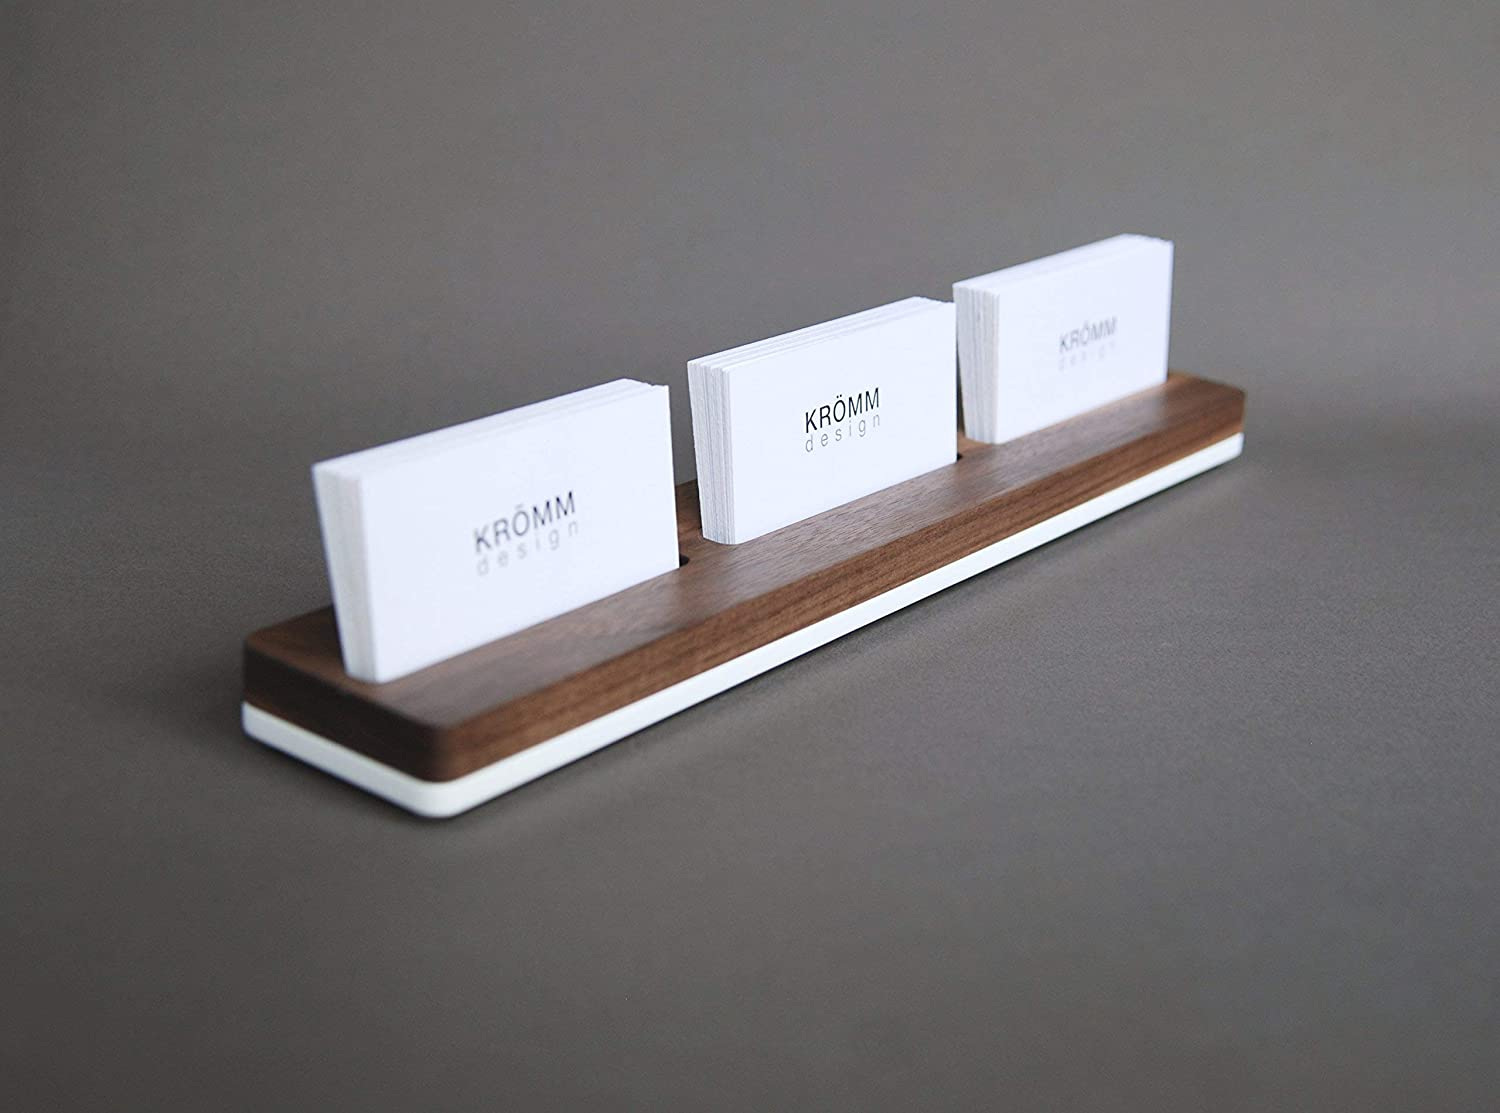 Multiple Horizontal Business Card Stand, Multiple Business Card Display, Multiple Business Card Holder, Multiple Business Card Wooden Display, Walnut Wood and White Acrylic